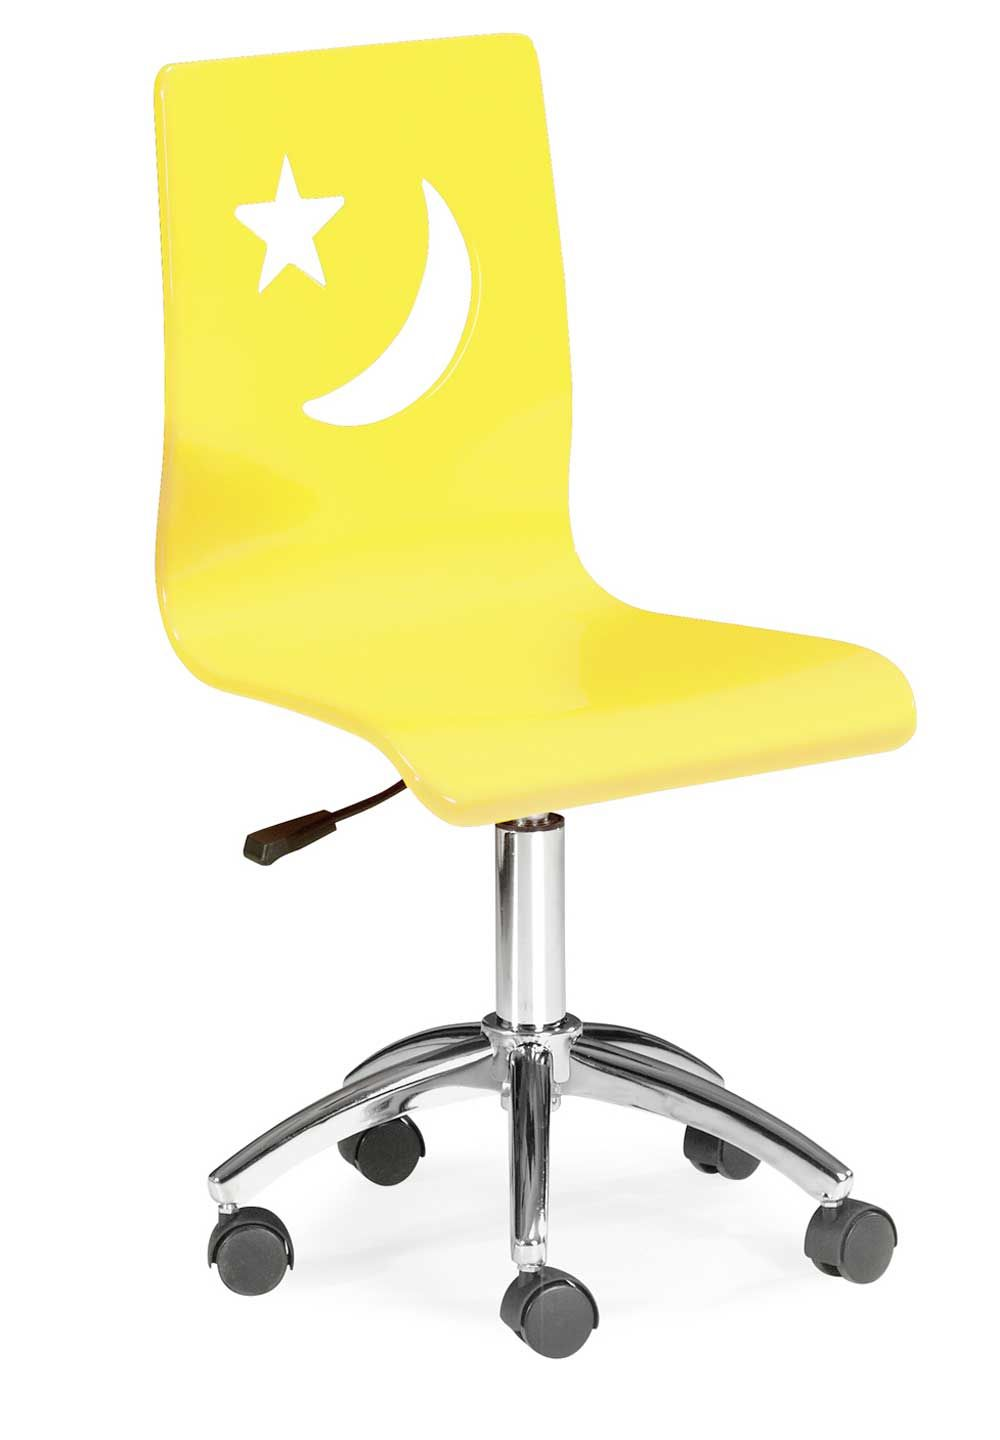 Adjustable Height Yellow Kids Office Chairs Kids Desk Chair Office Chair Desk Chair